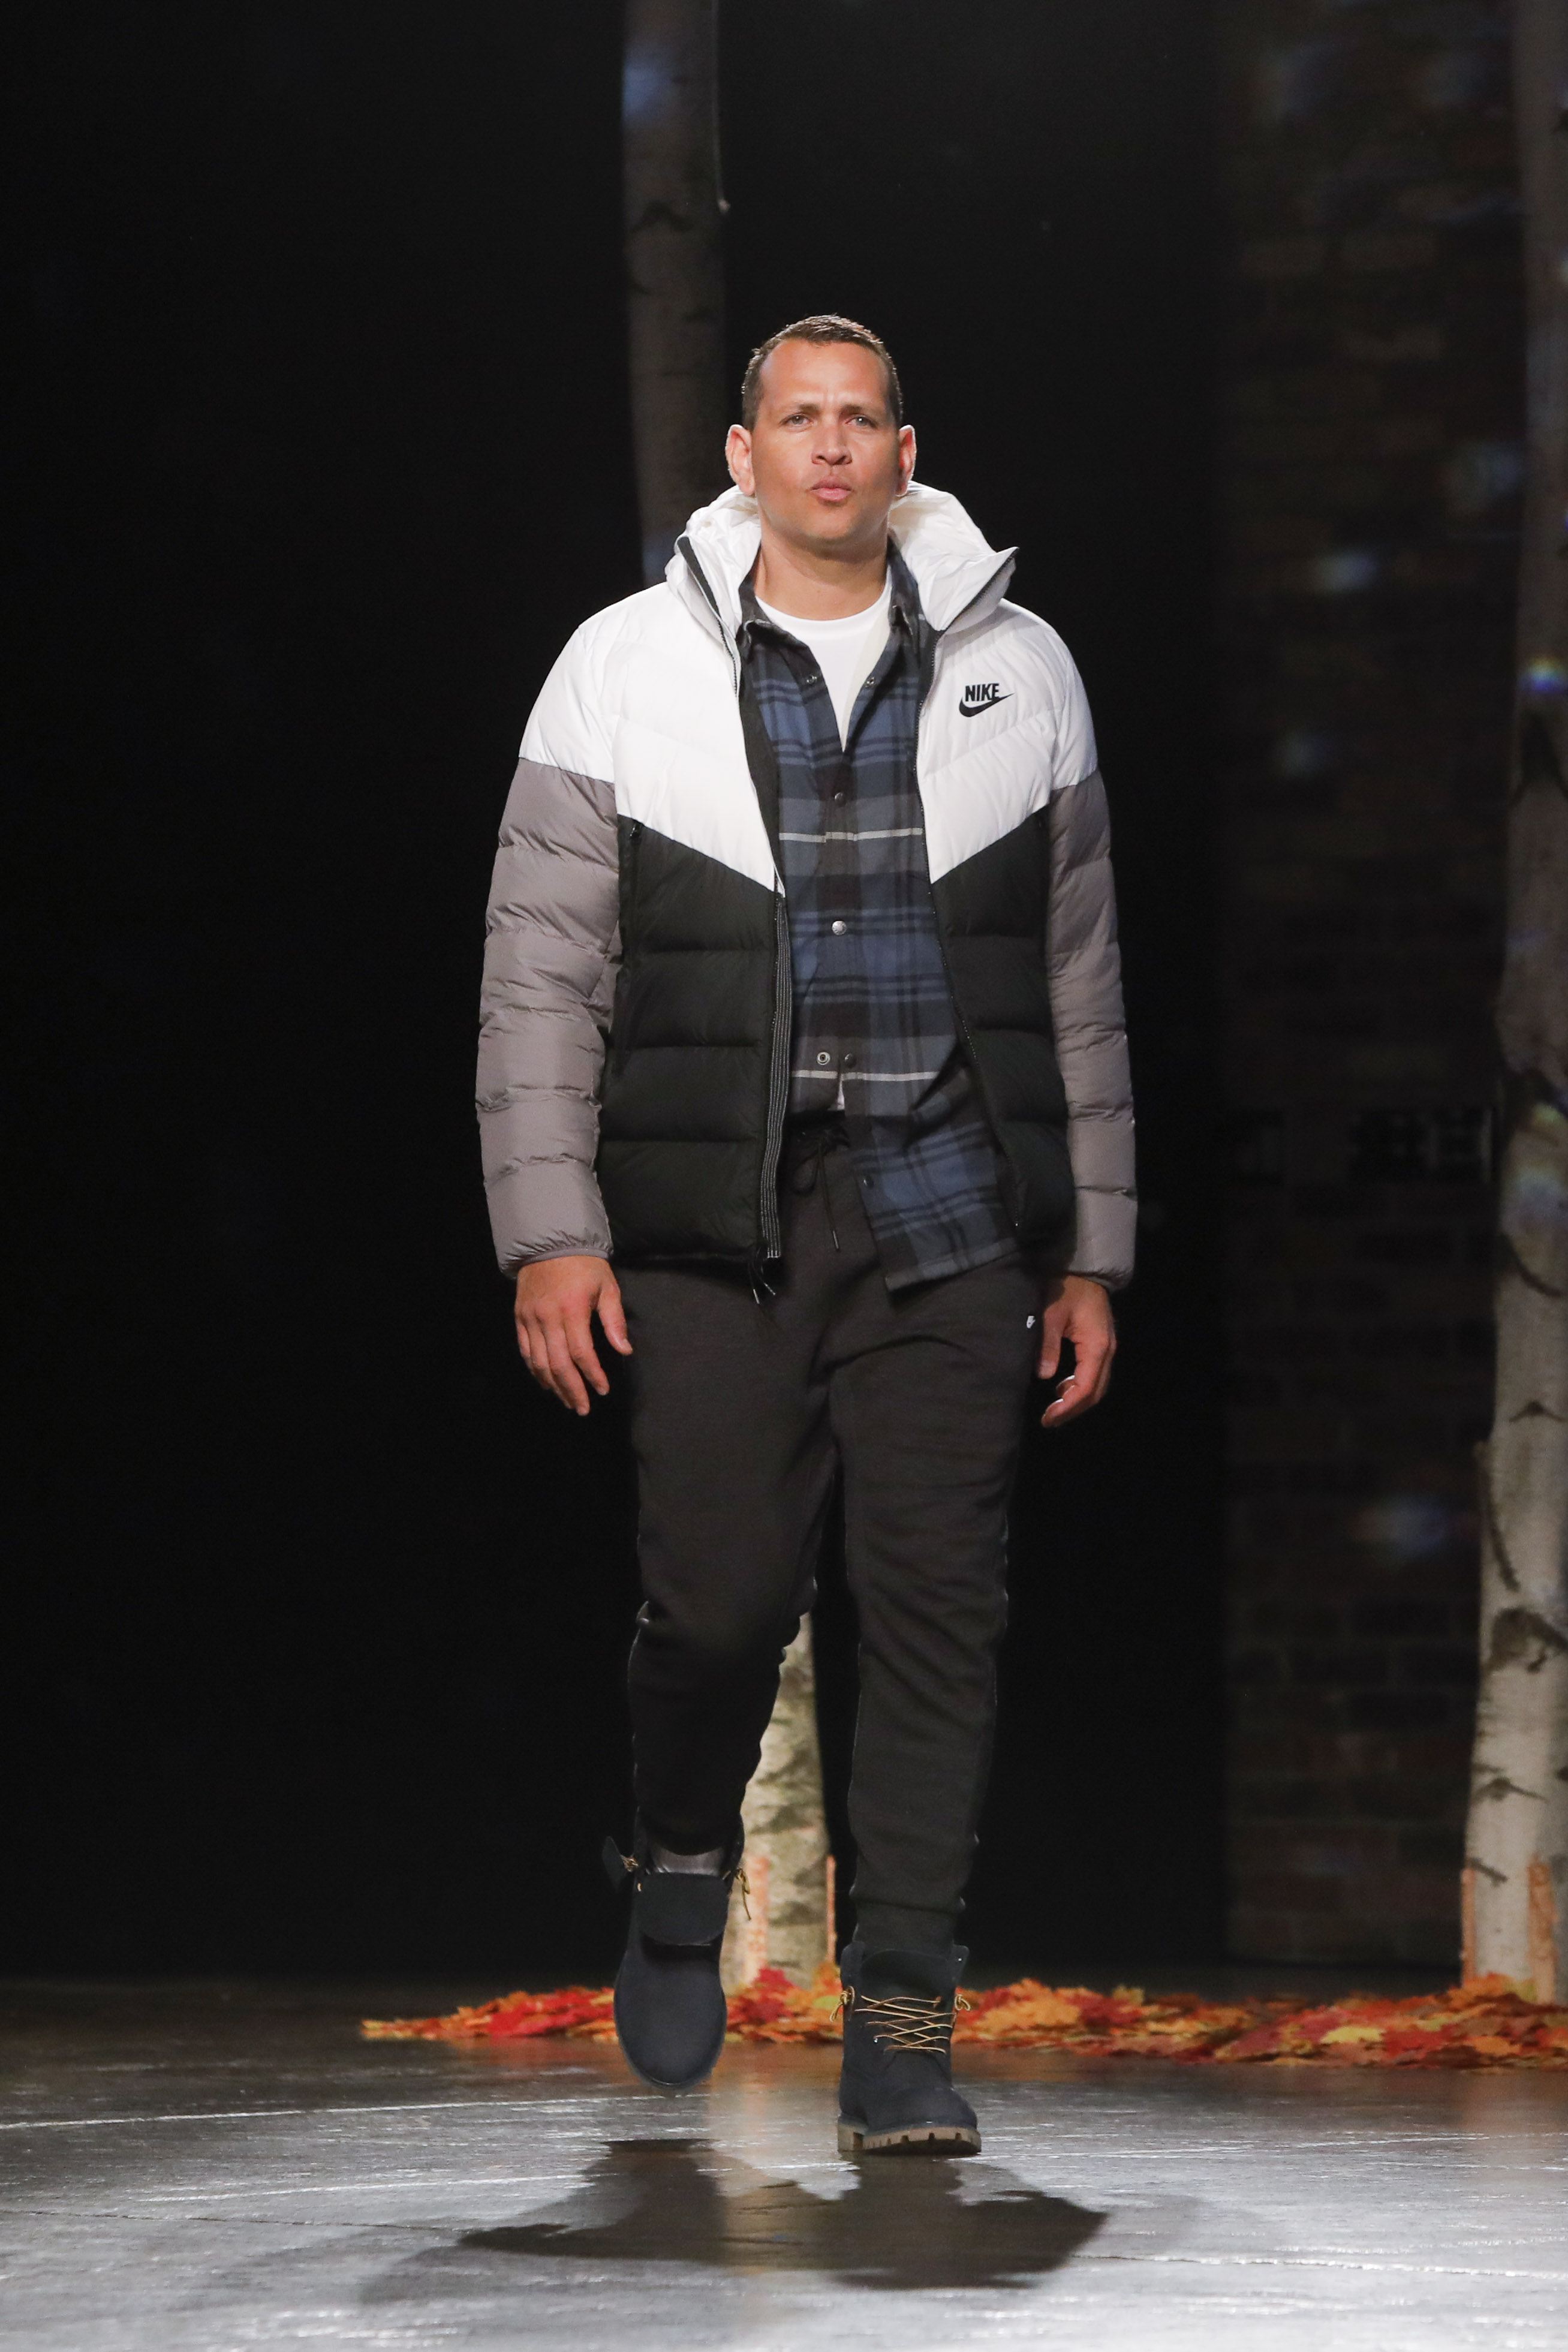 Alex Rodriguez on the runway for Dick's Sporting Goods.